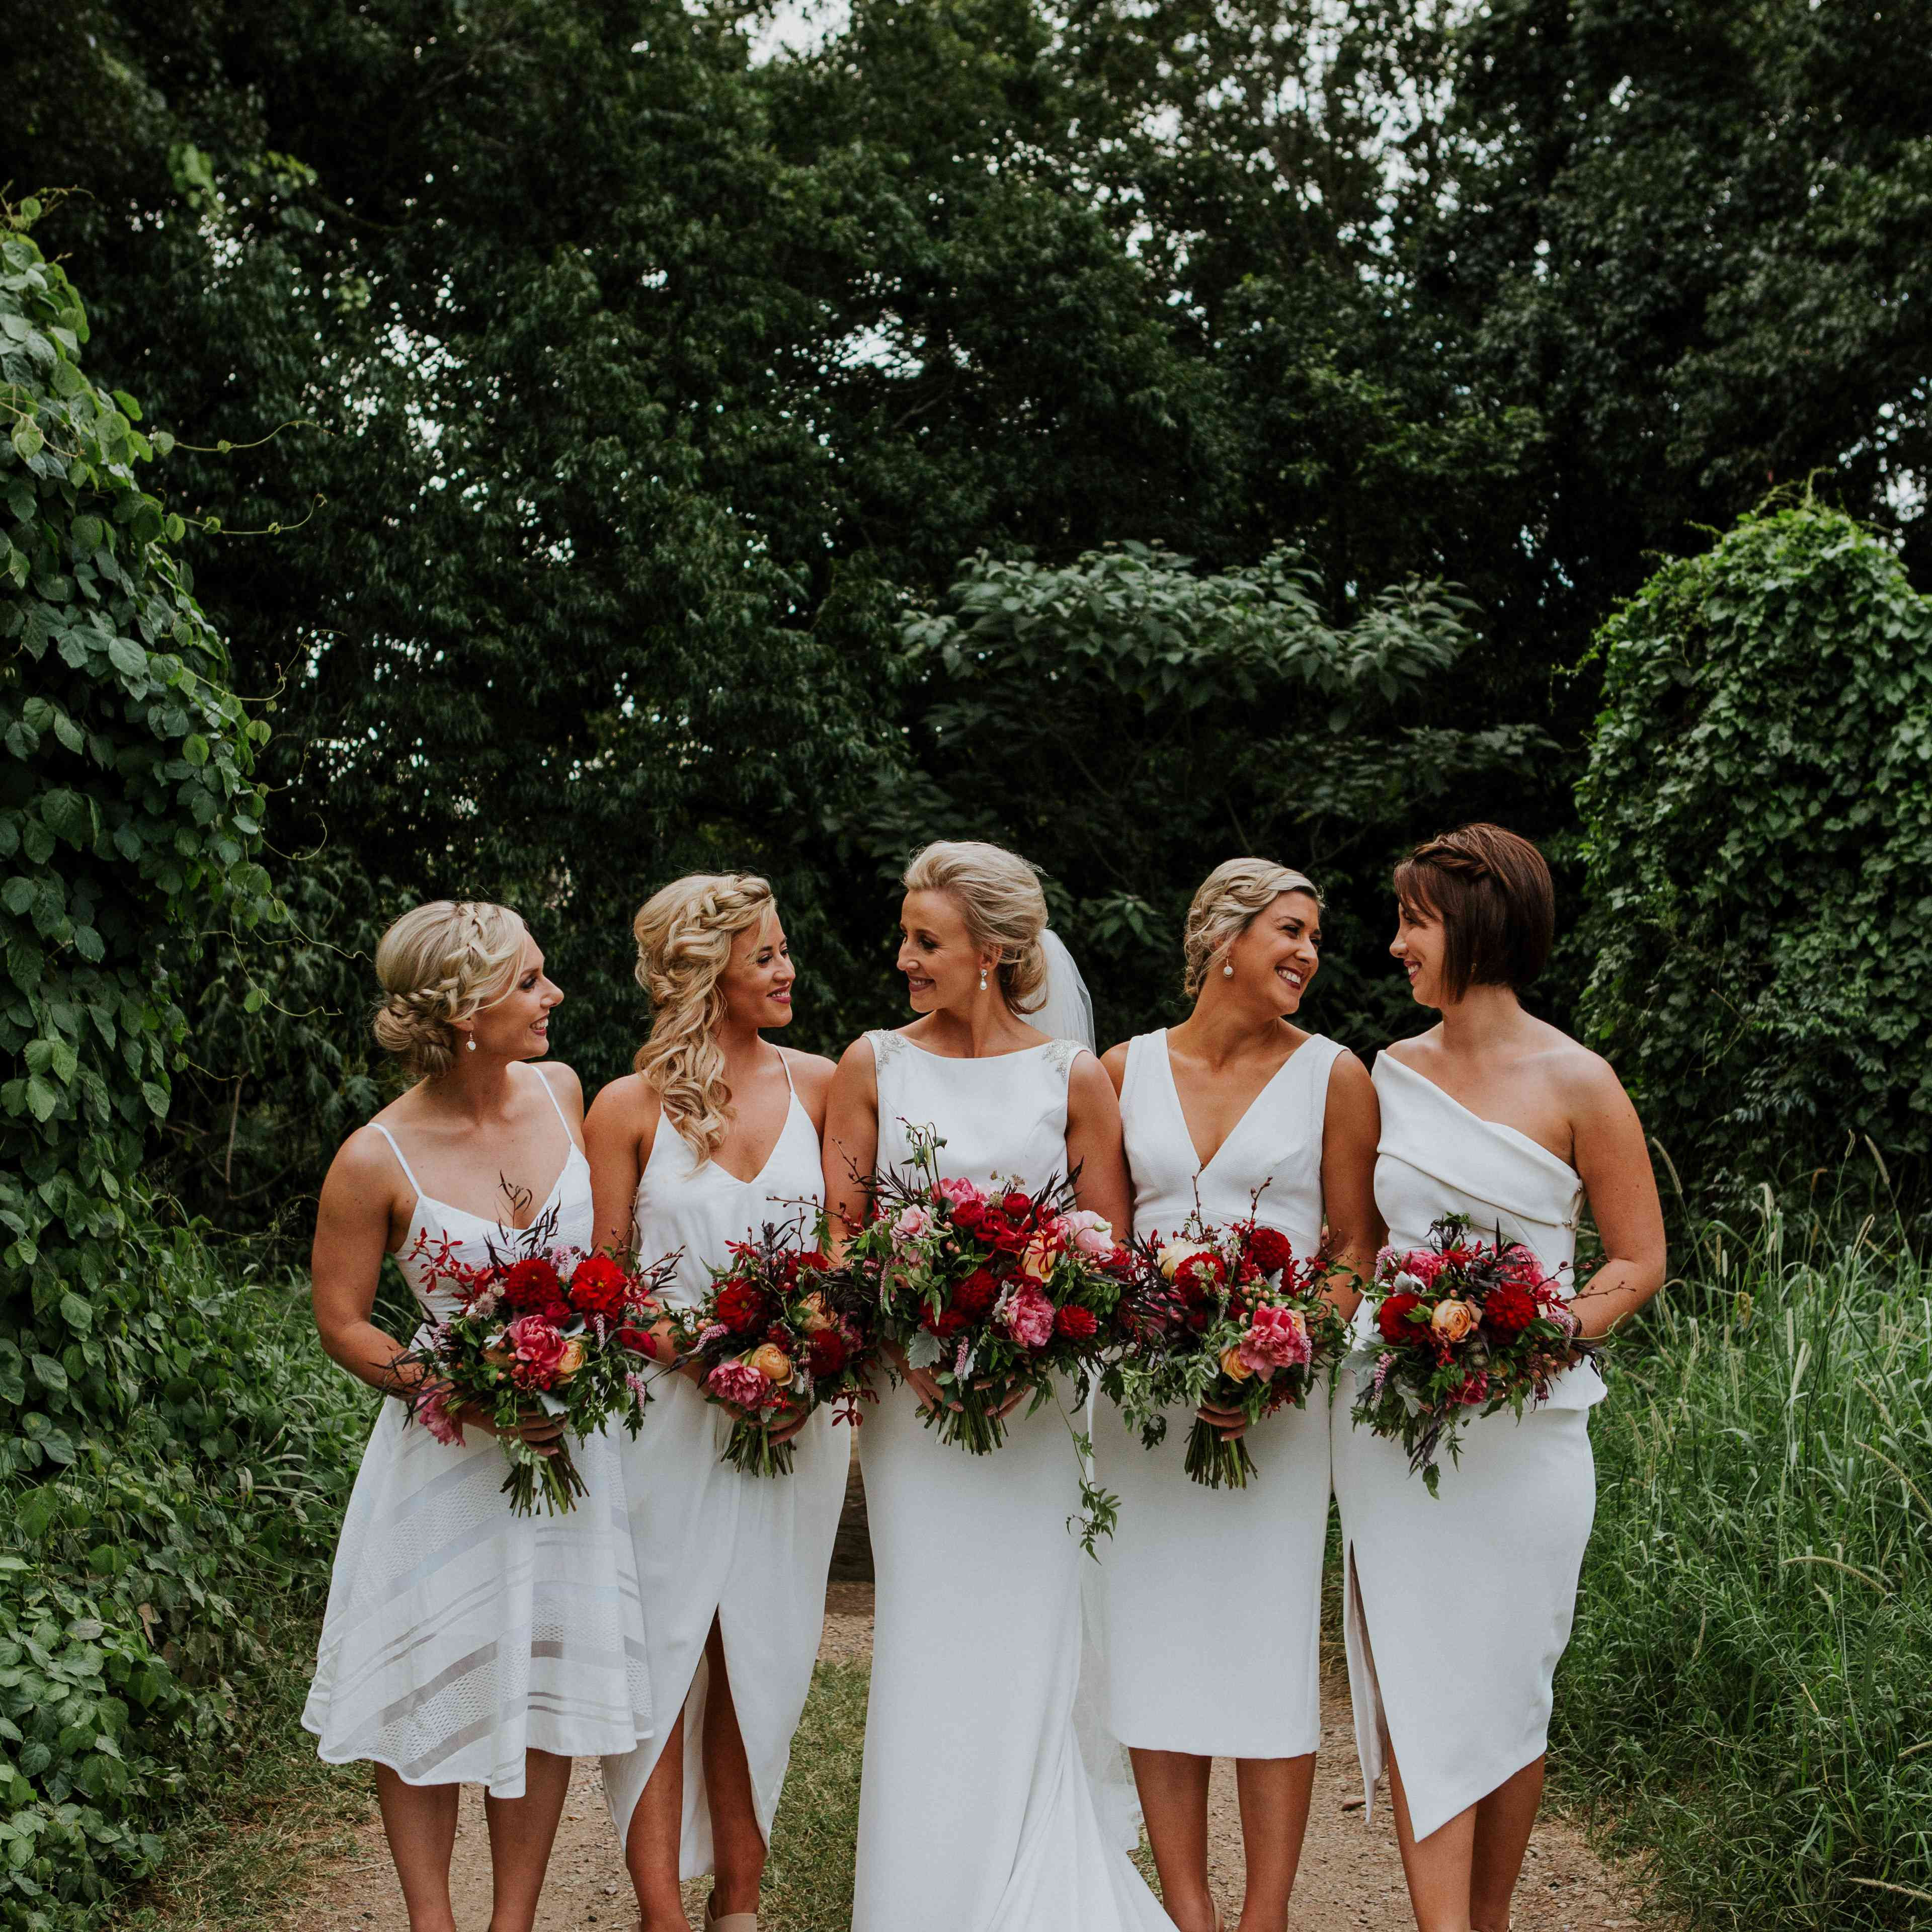 25 Bridesmaids Who Killed The Fashion Game With Unique Bridesmaid